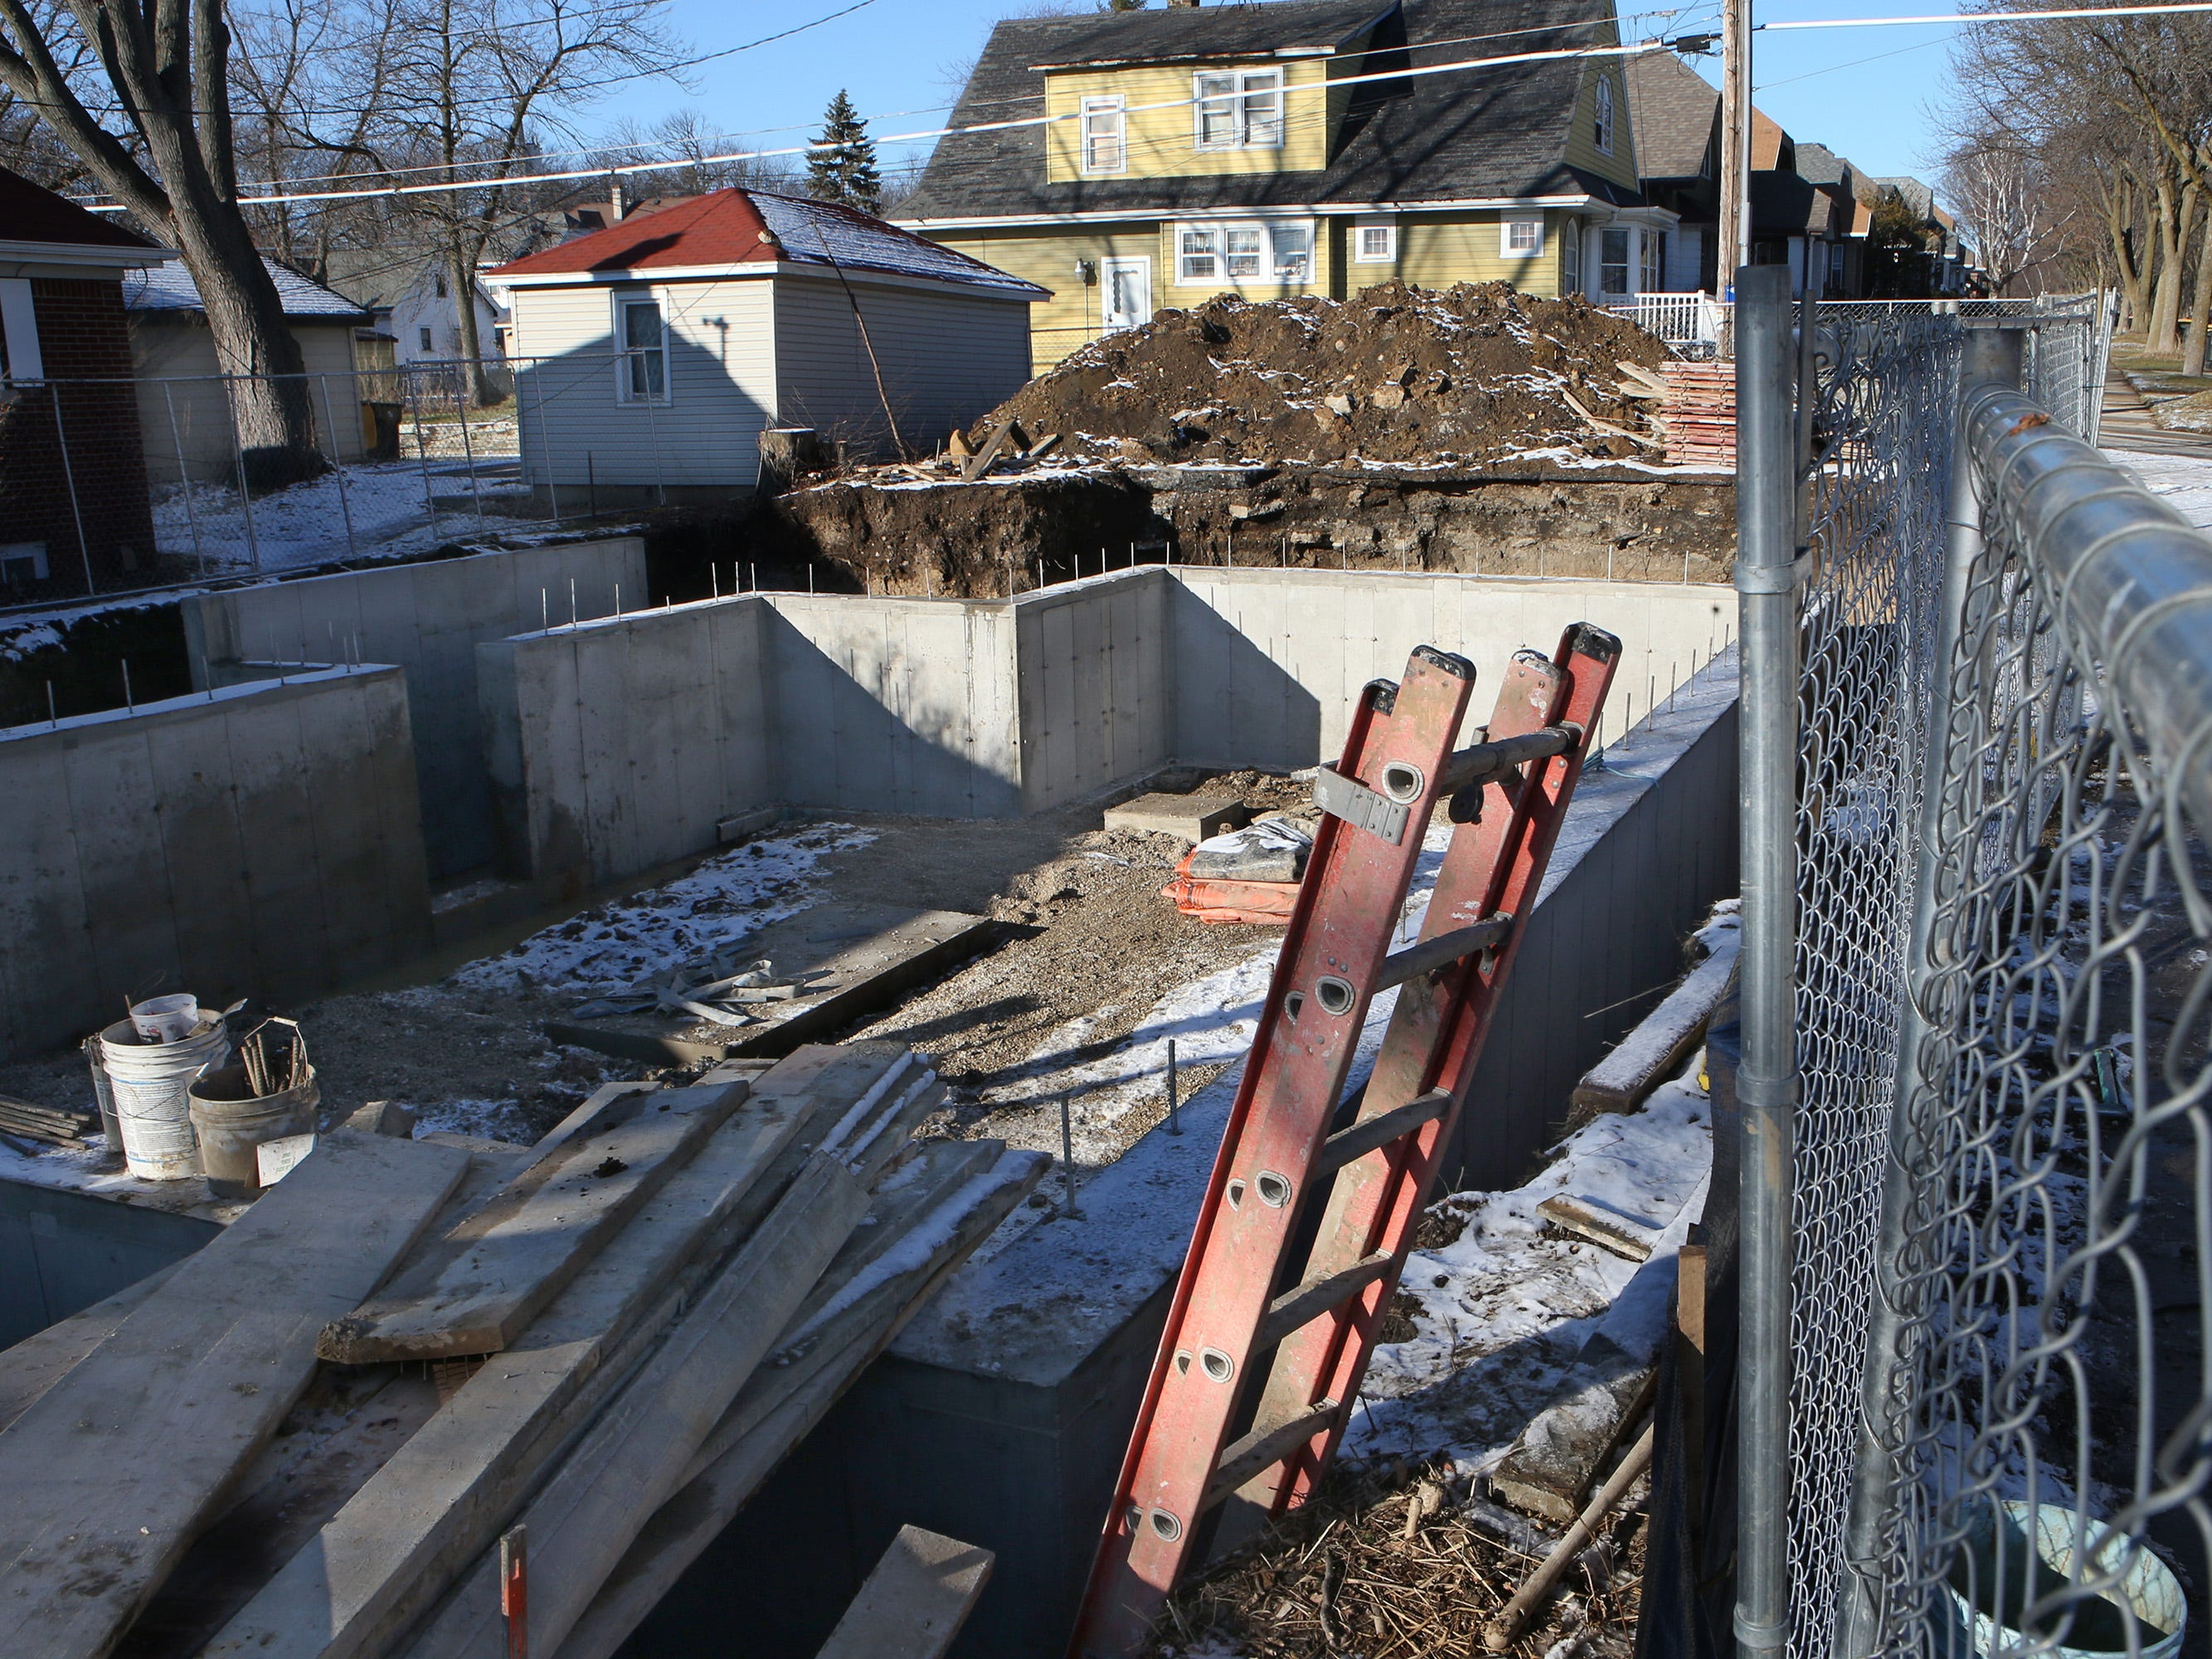 A foundation is in place to receive the Log Cabin that is to be moved from 2515 N. Wauwatosa Ave. to this site on the northwest corner of North Avenue and 64th Street. A planned Jan. 9 move has been postponed.